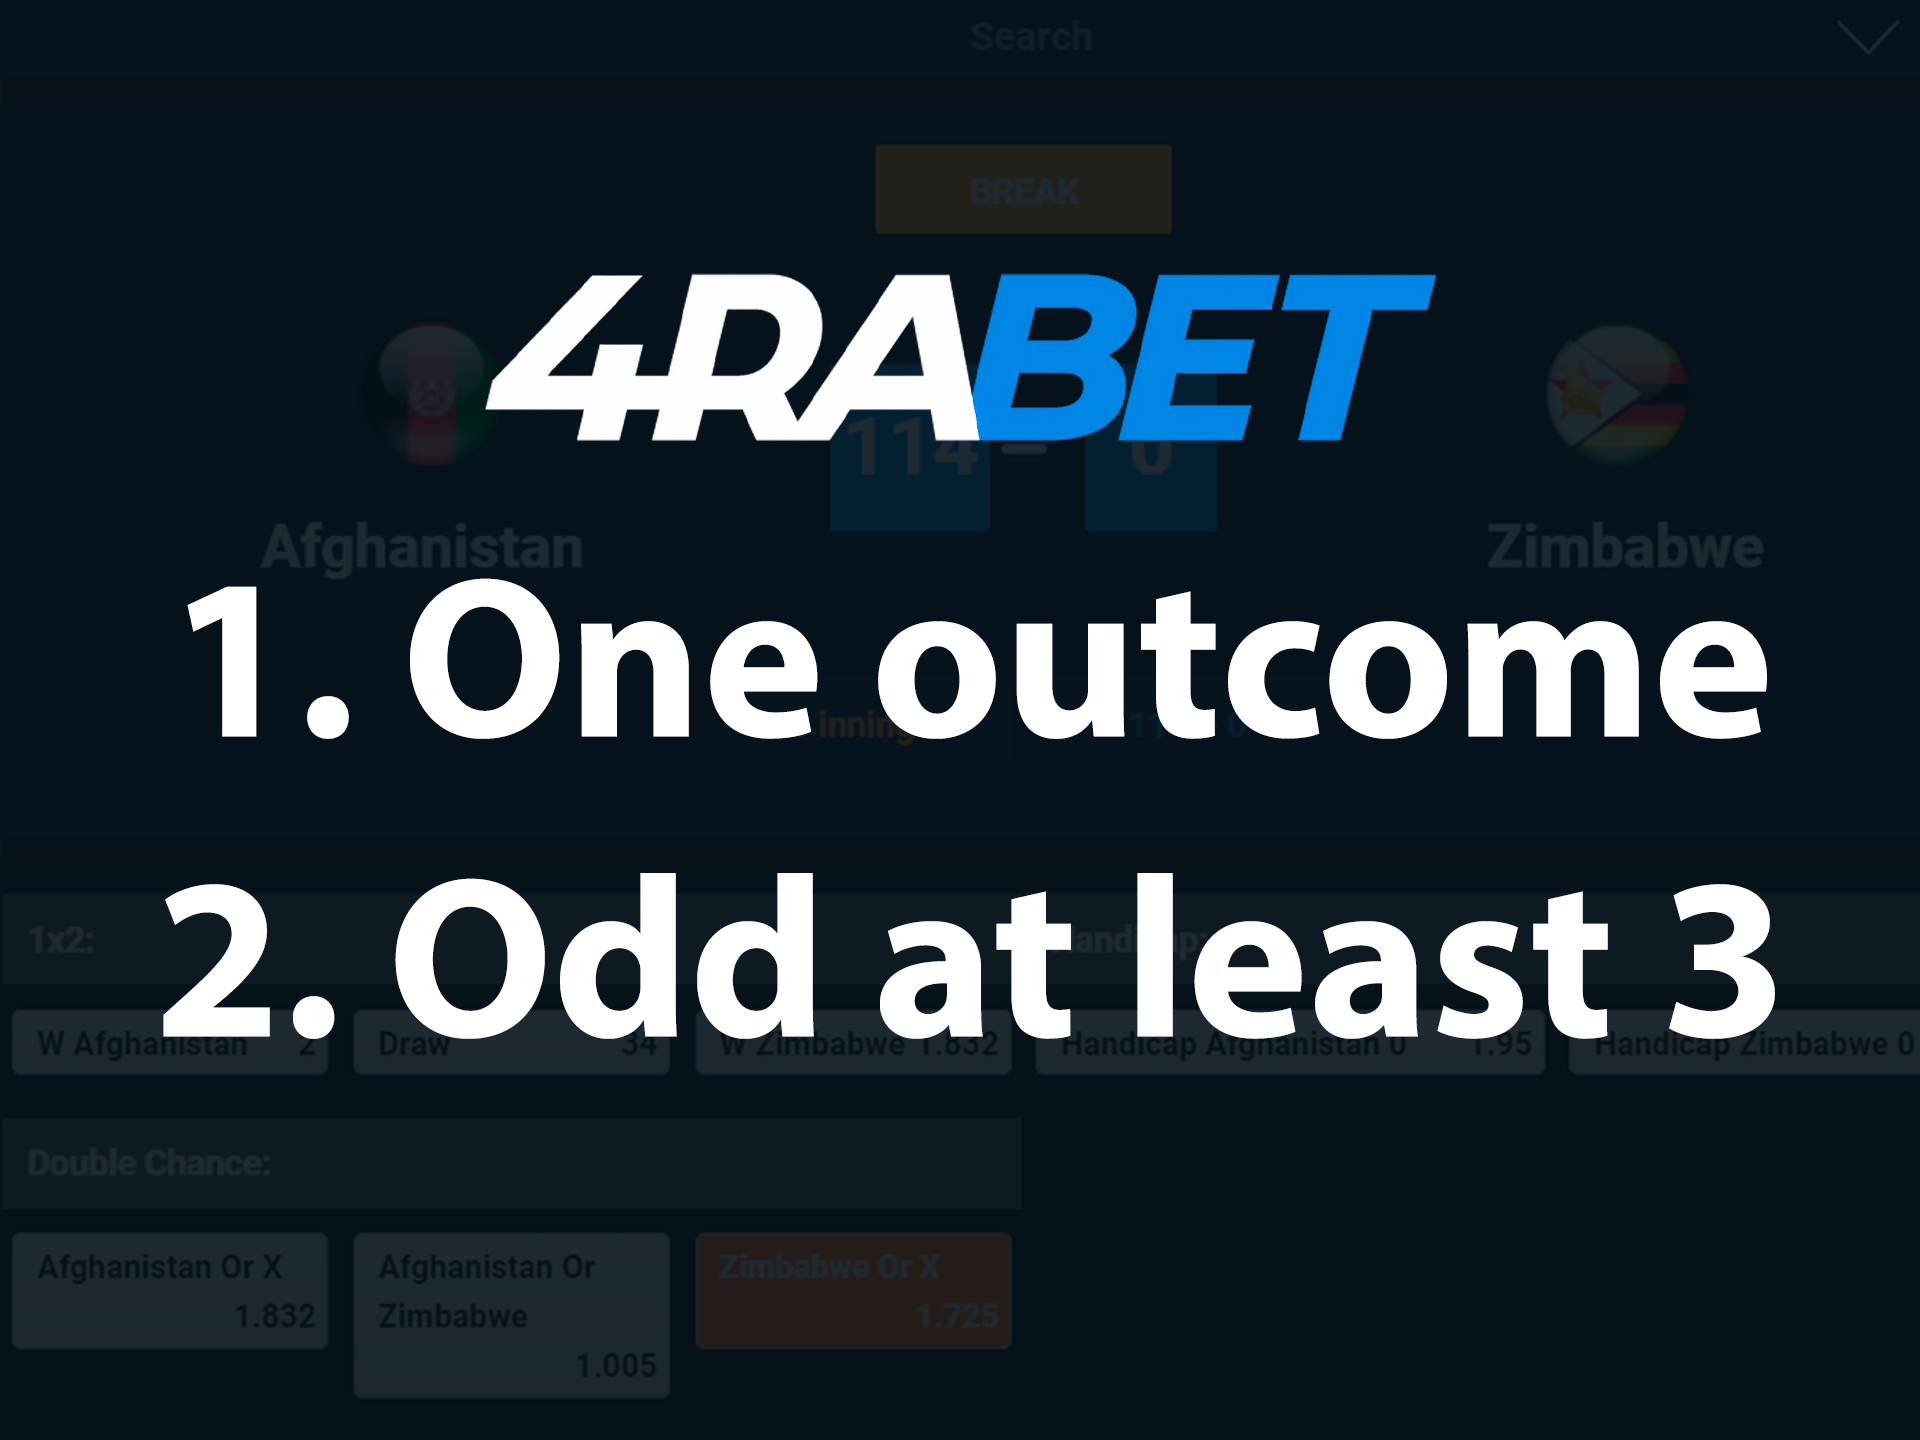 Meet the wagering conditions to be able to withdraw your winnings.